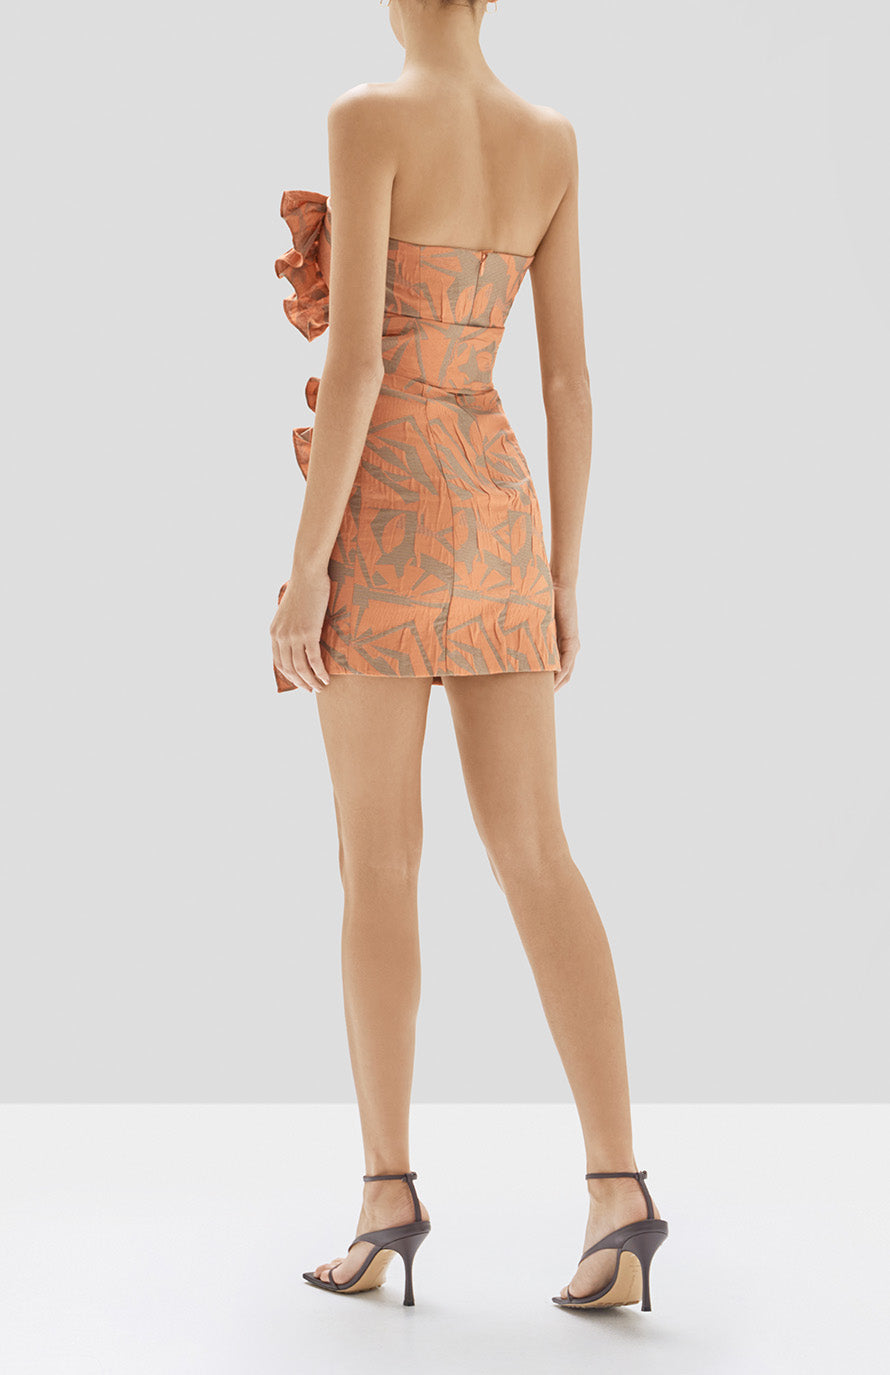 Alexis Nokoma Dress in Amber from Pre Spring 2020 Collection - Rear View